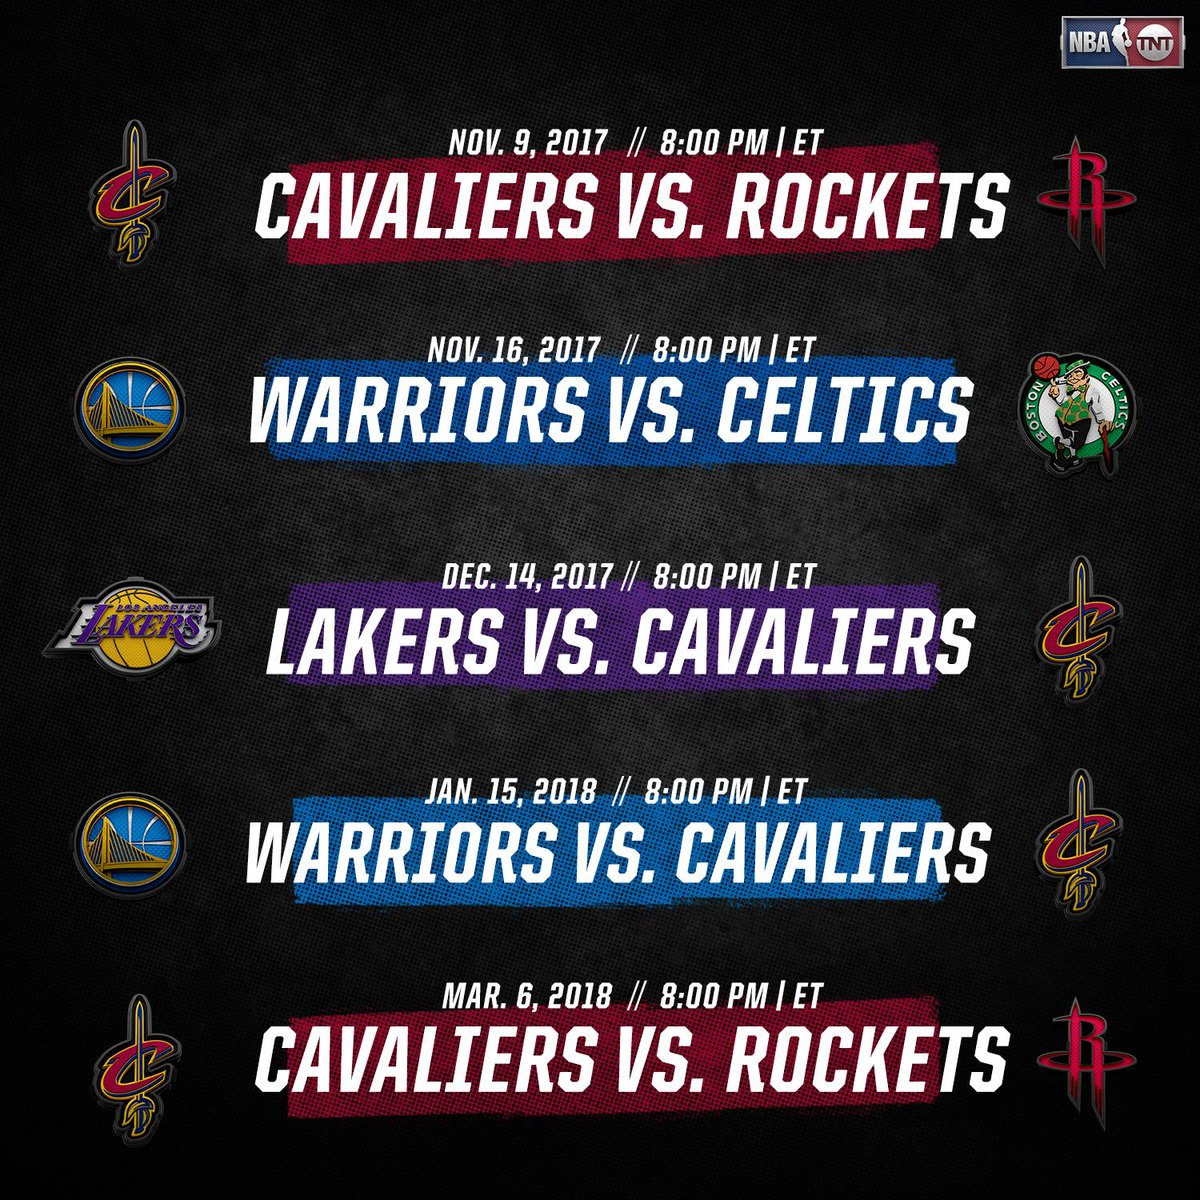 An official 👀 at the notable @NBAonTNT games coming up in the 2017-2018 @NBA season!